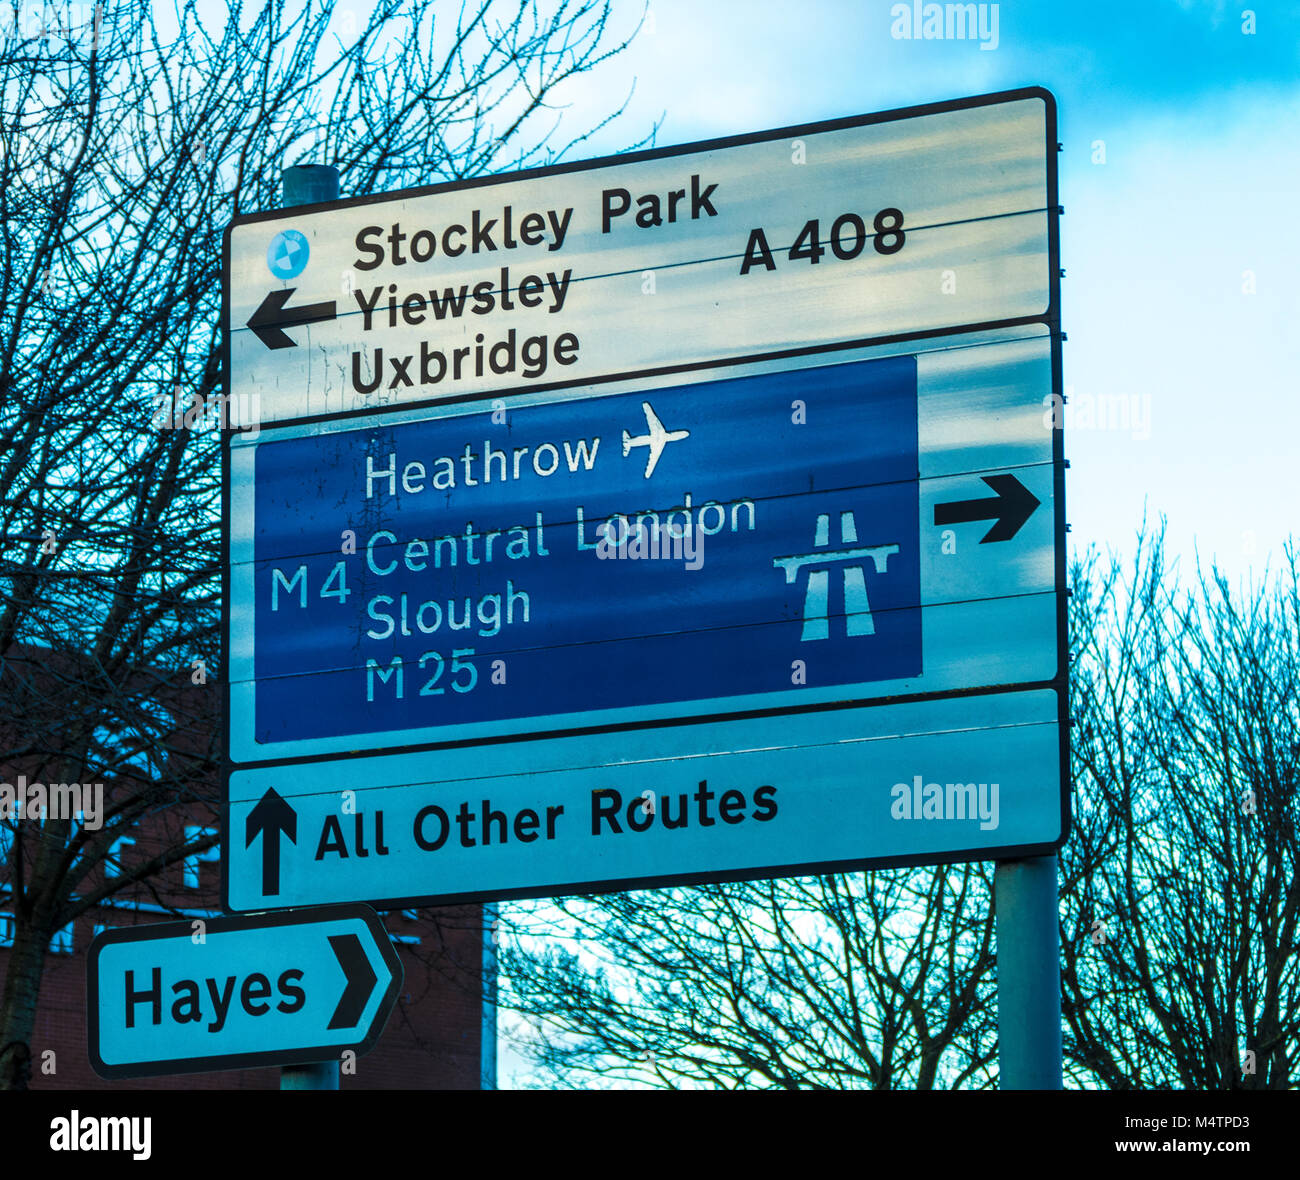 Prominent road sign in Sipson, Middlesex, Greater London, UK, pointing to various nearby suburbs and main destinations - Stock Image